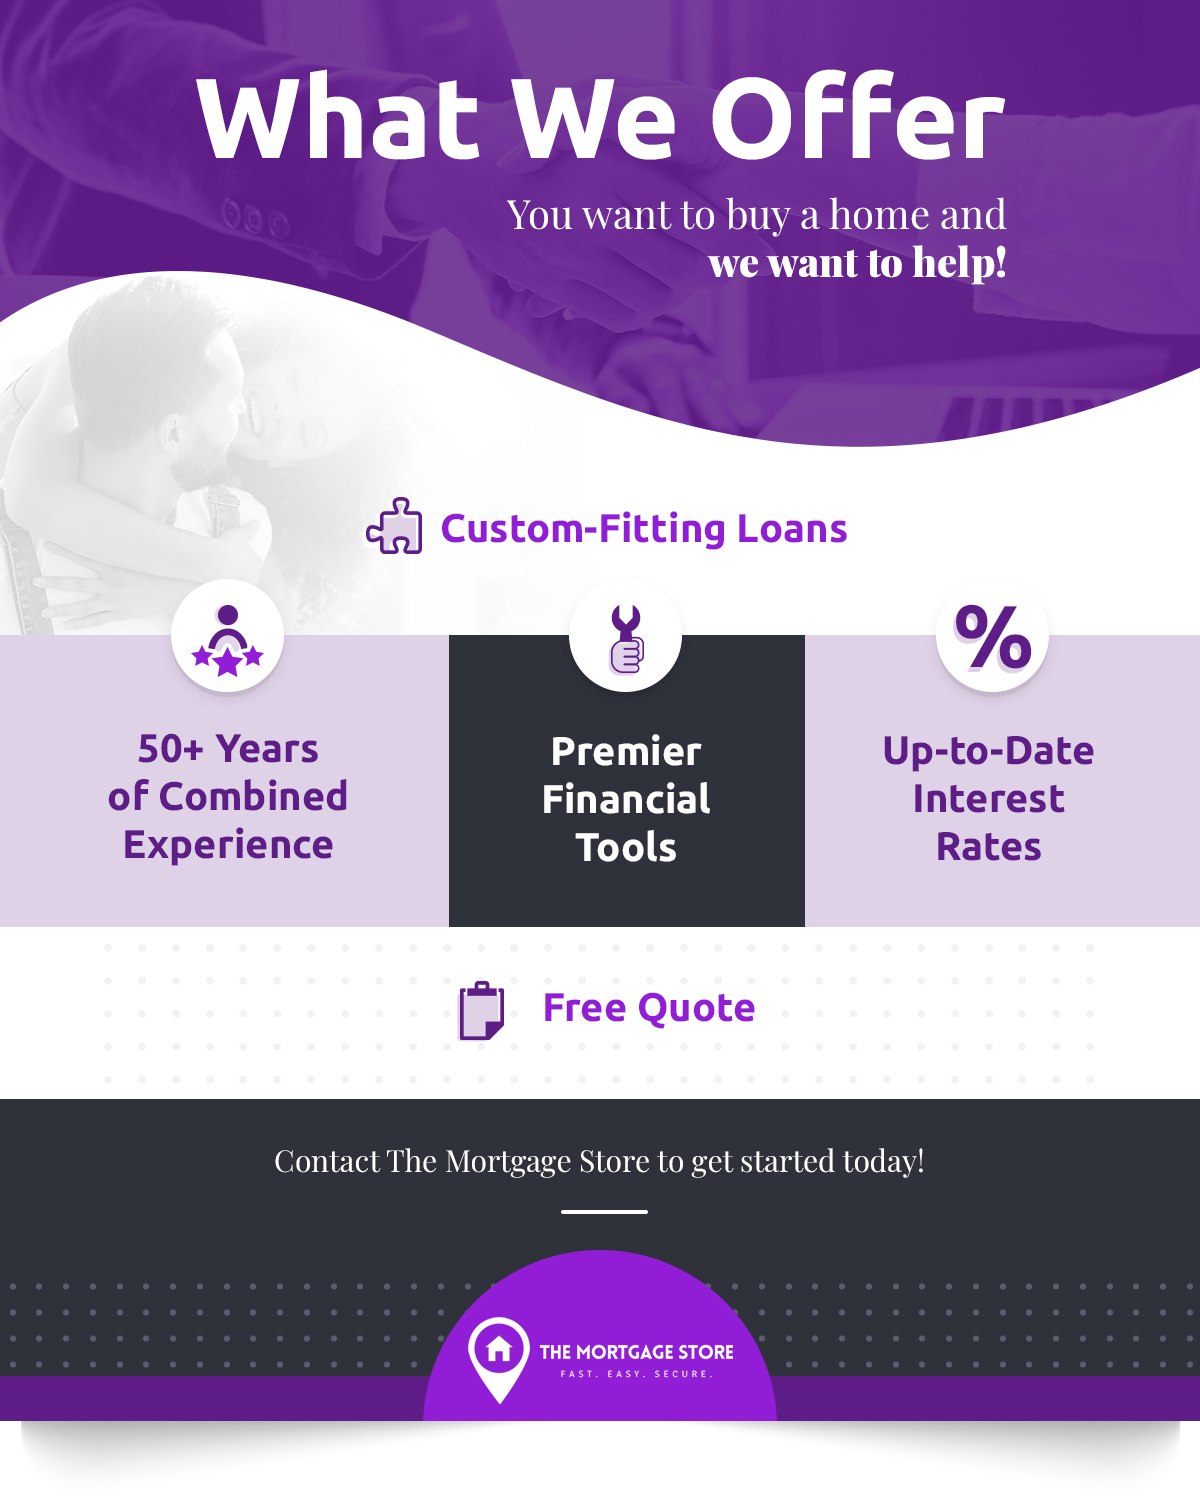 What we Offer infographic